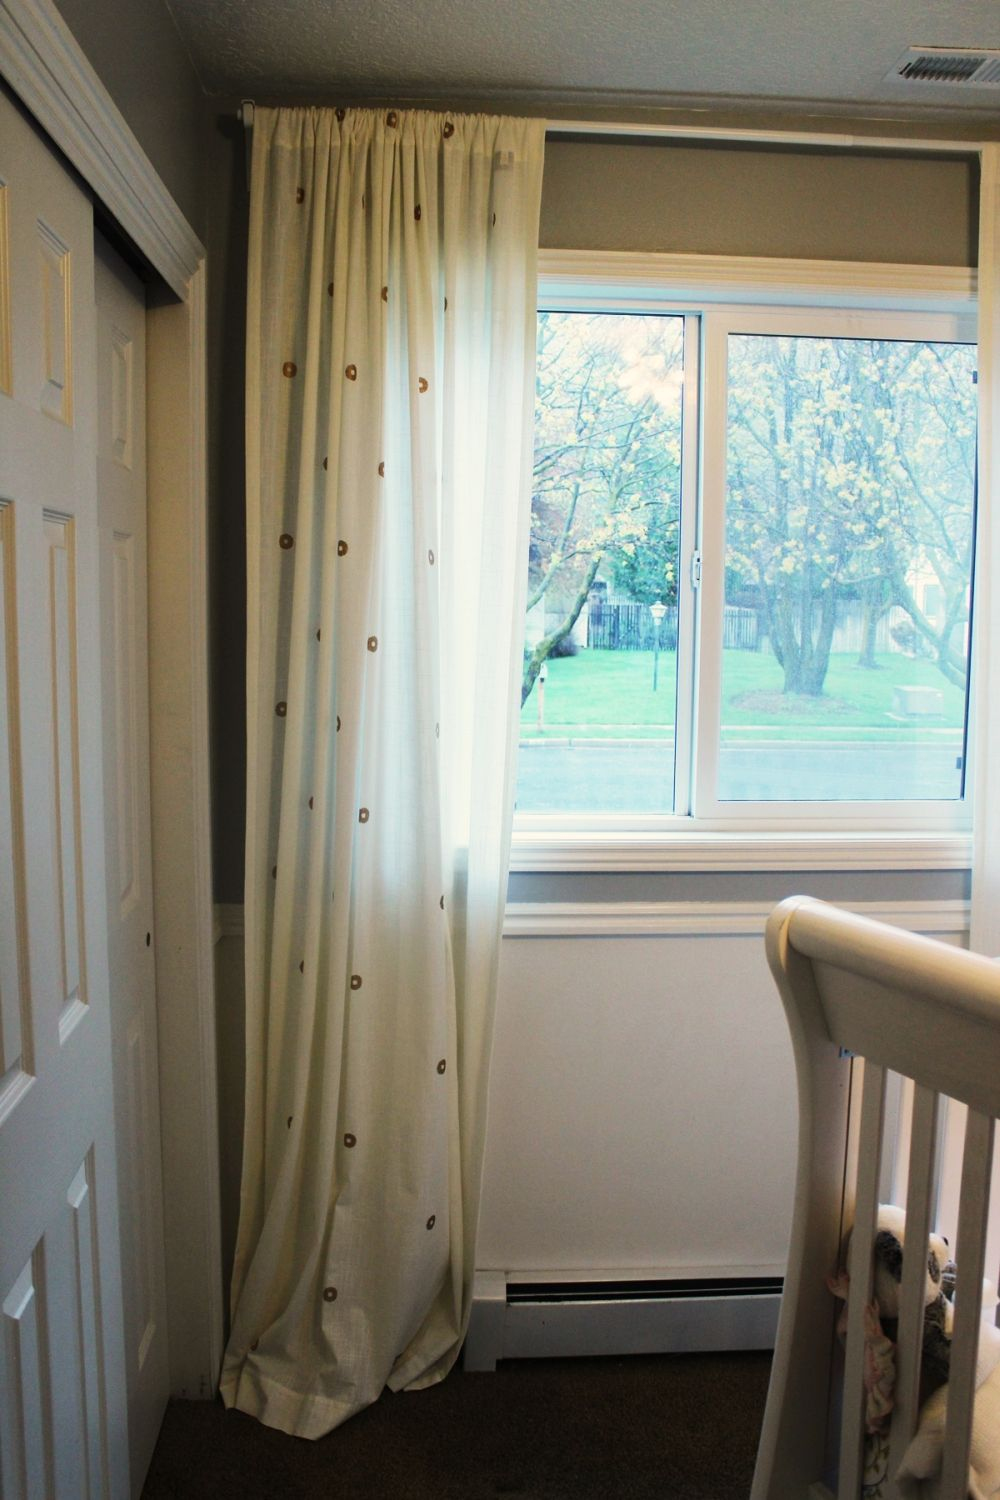 even something as small as a narrow walkway by the window so you can pull the curtains